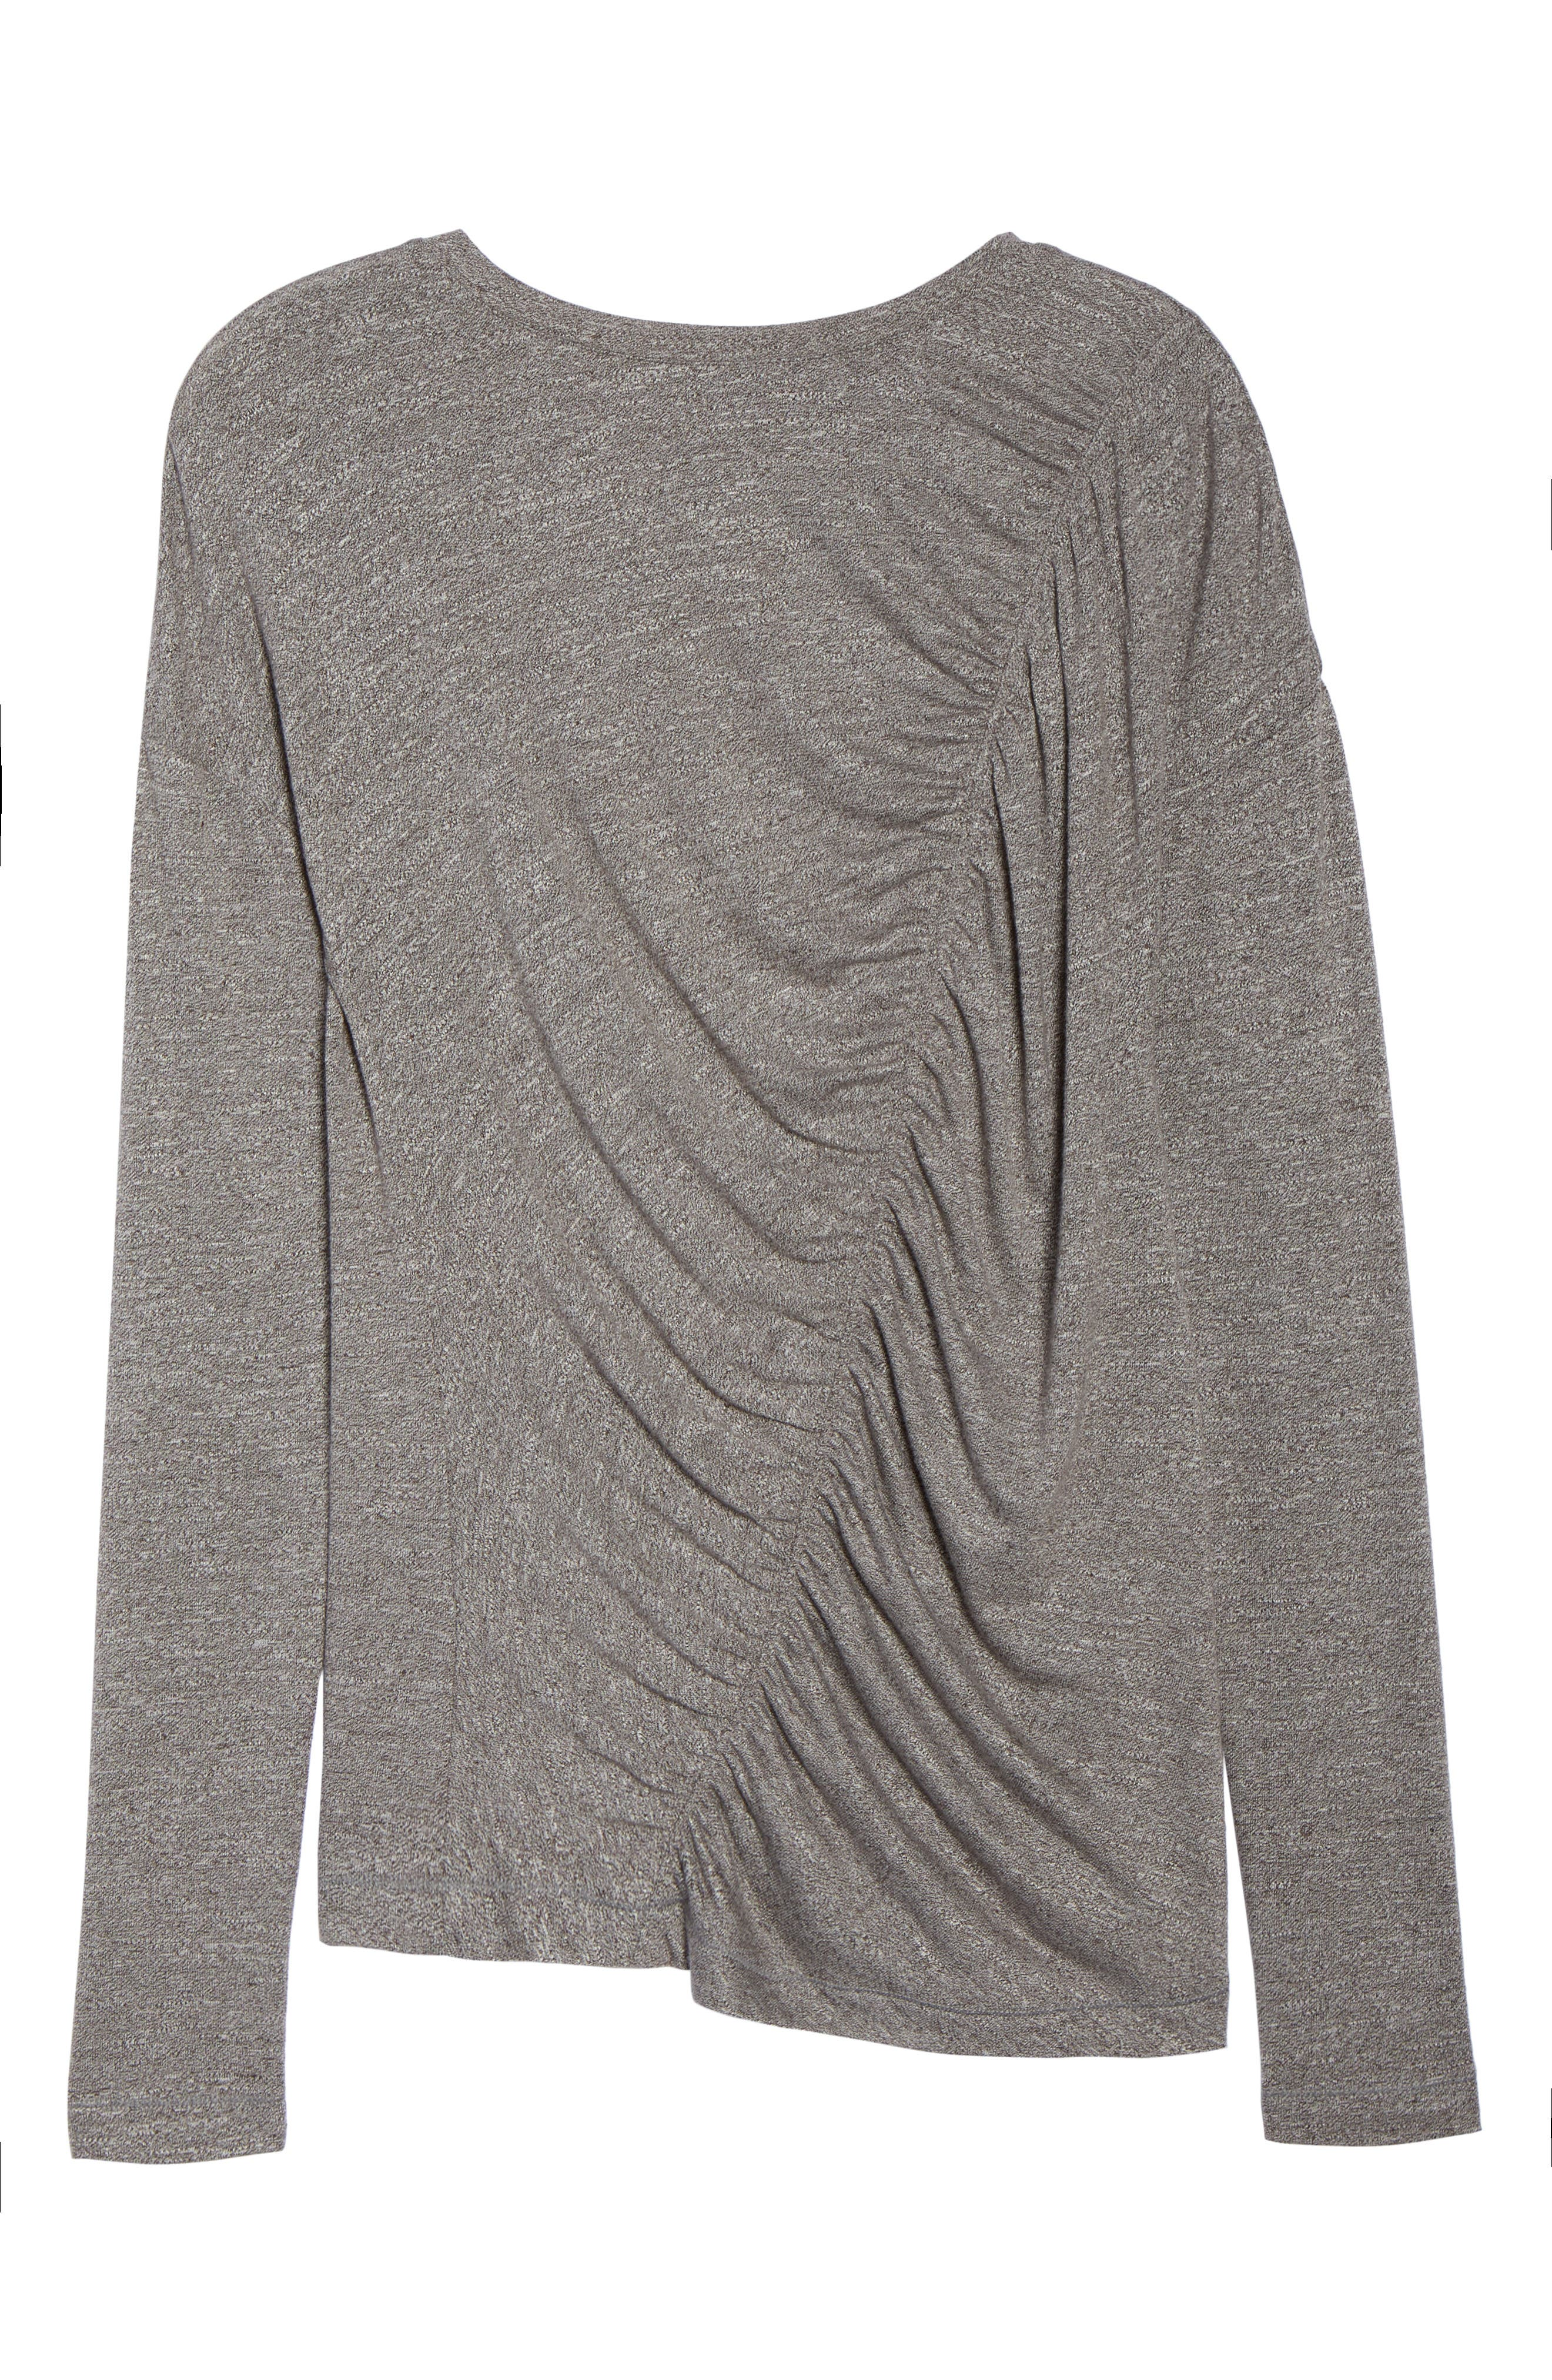 So Graceful Ruched Tee,                             Alternate thumbnail 7, color,                             GREY DARK HEATHER